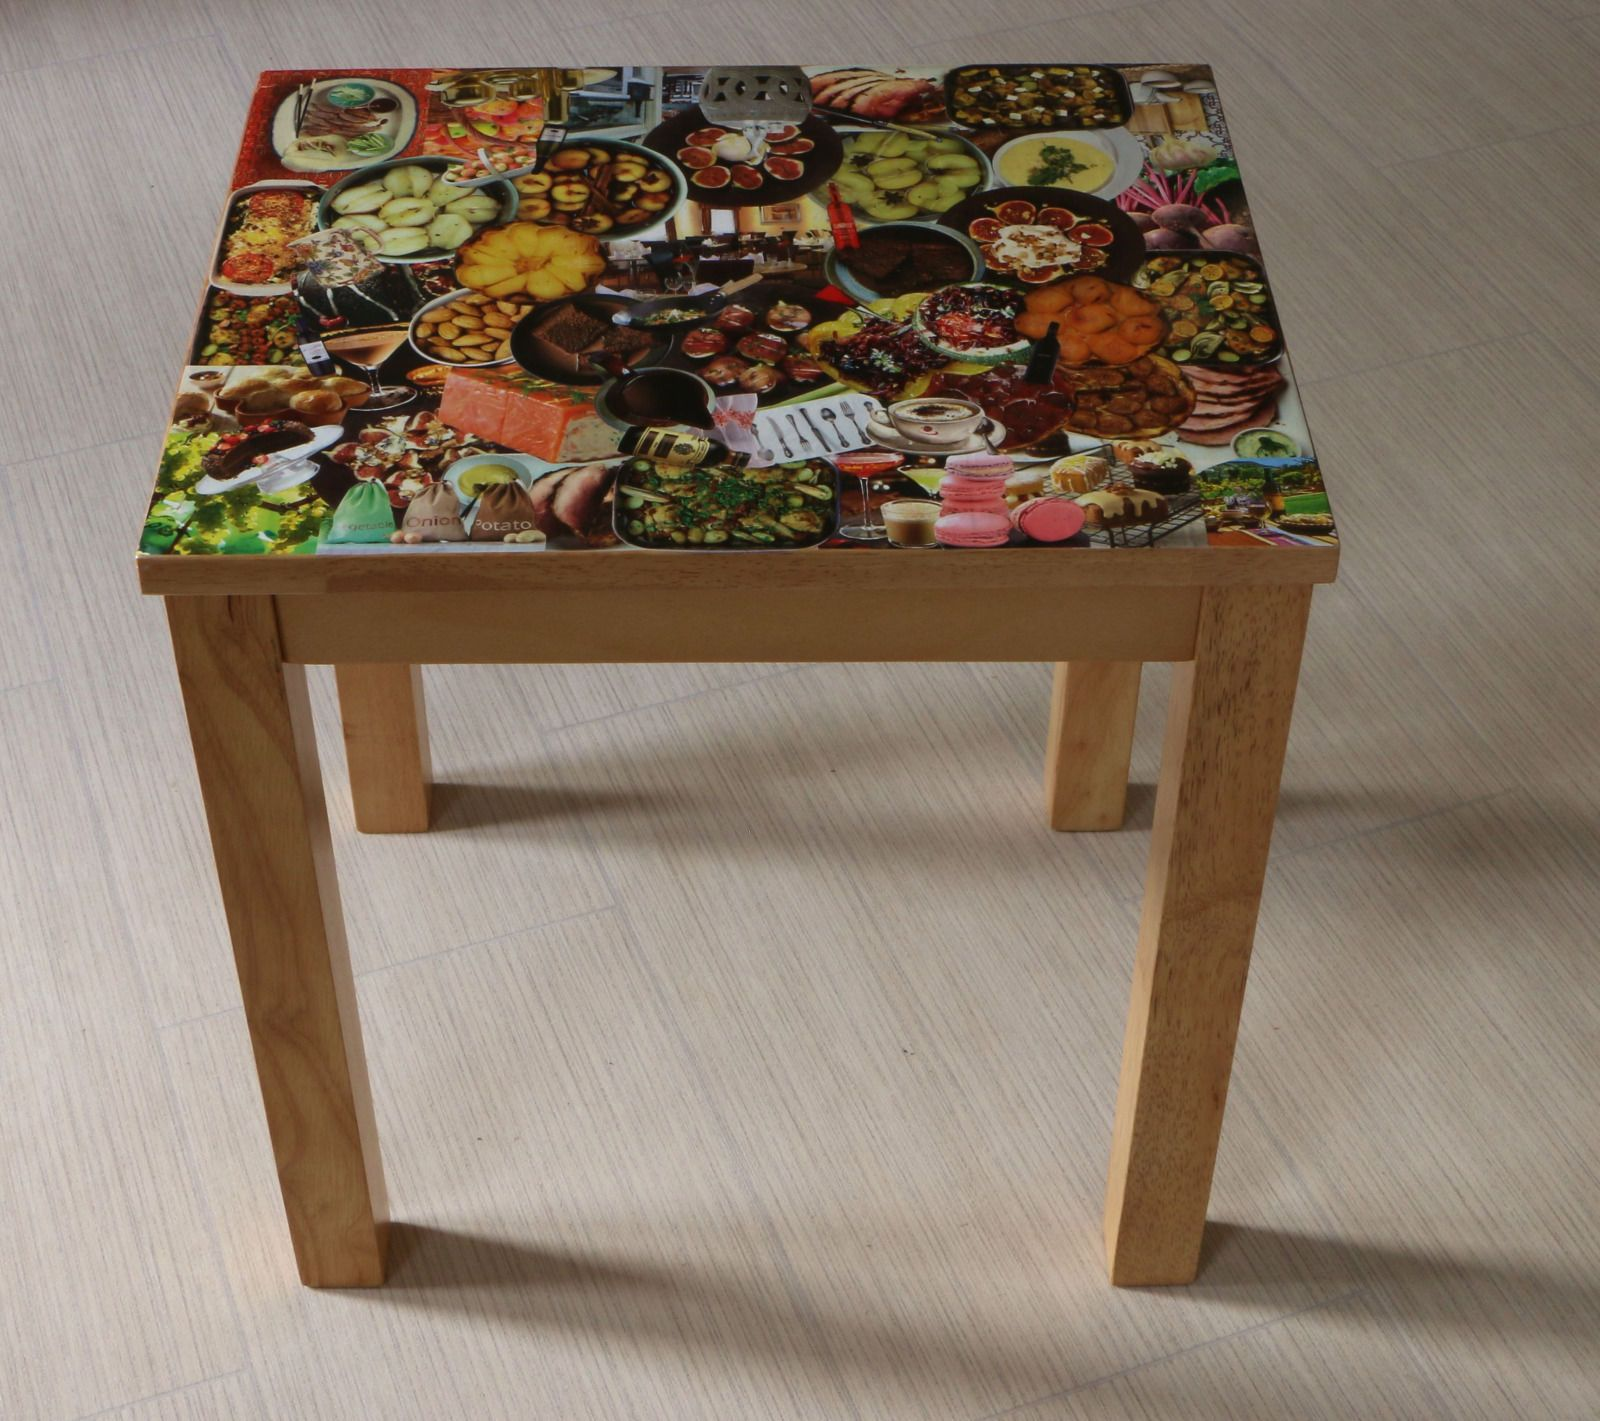 Coffe Table with Original Unique Decoupage Design | eBay